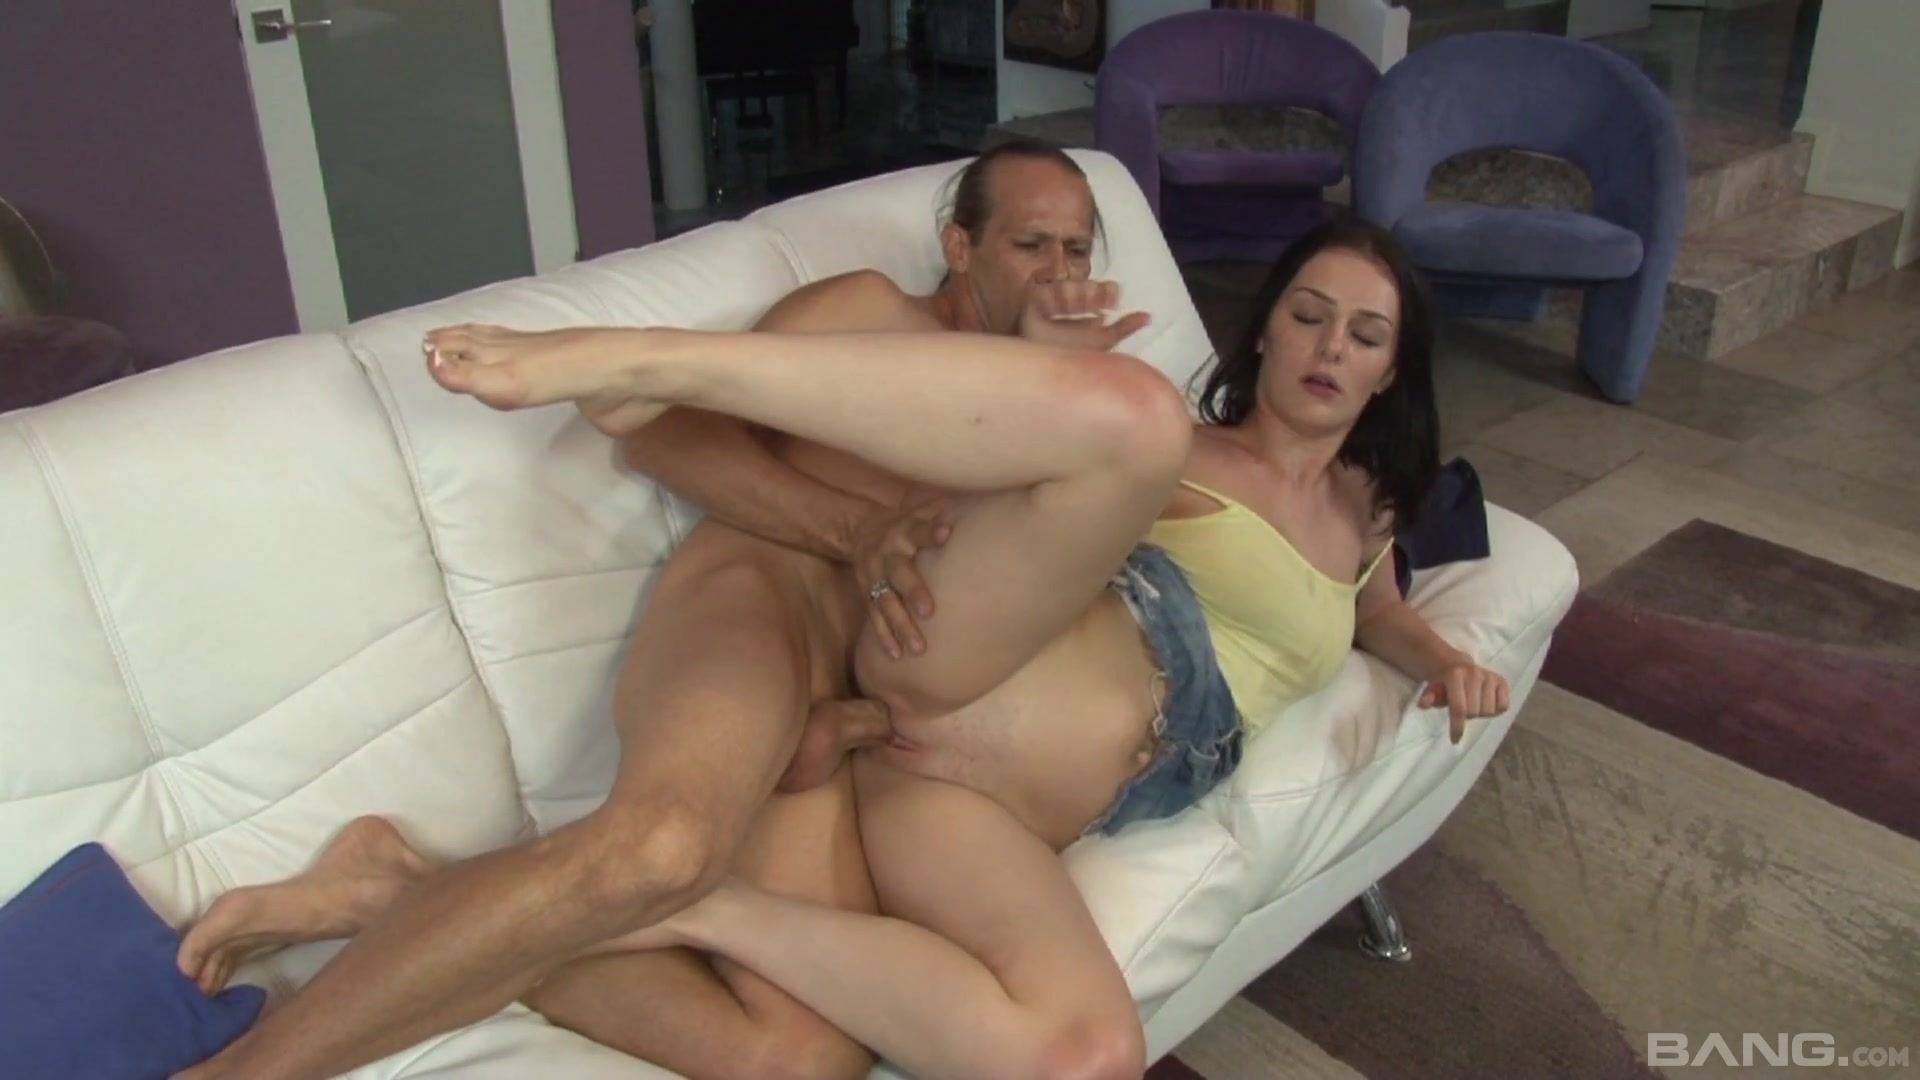 Step daddy knows how to poke her pussy and make her feel good